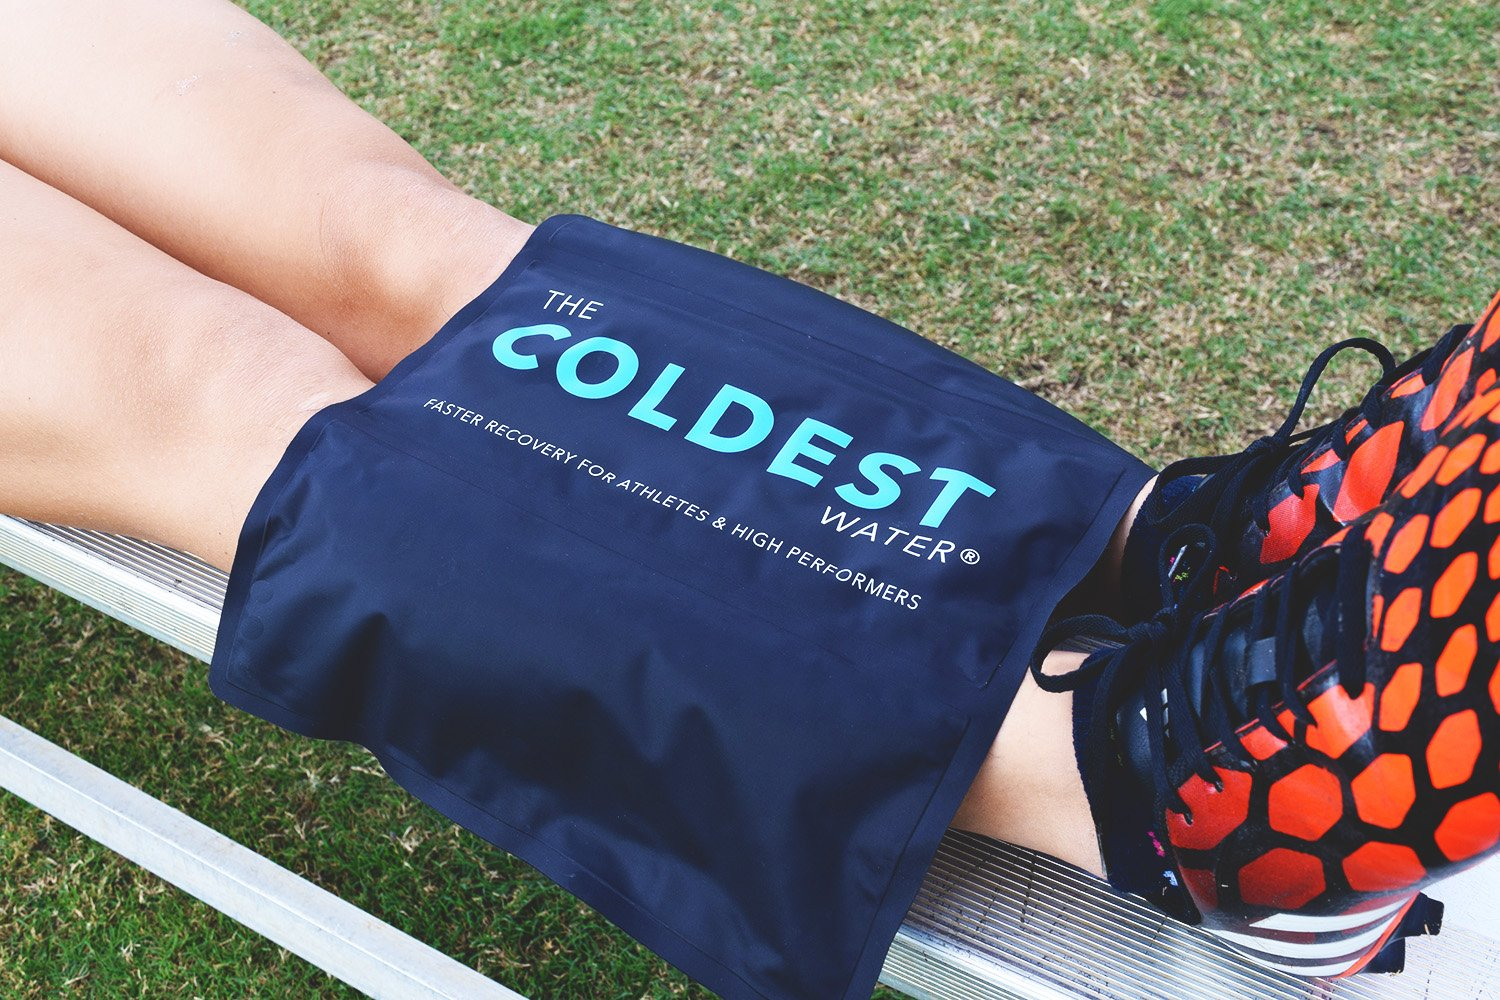 The Coldest Ice Pack Gel Reusable Flexible Therapy Best For Back Pain Leg Arm Knee Shoulder Sciatic Nerve Recovery Medical Grade X-Large Big Compress 15'' x 12'' by The Coldest Water by The Coldest Water (Image #6)